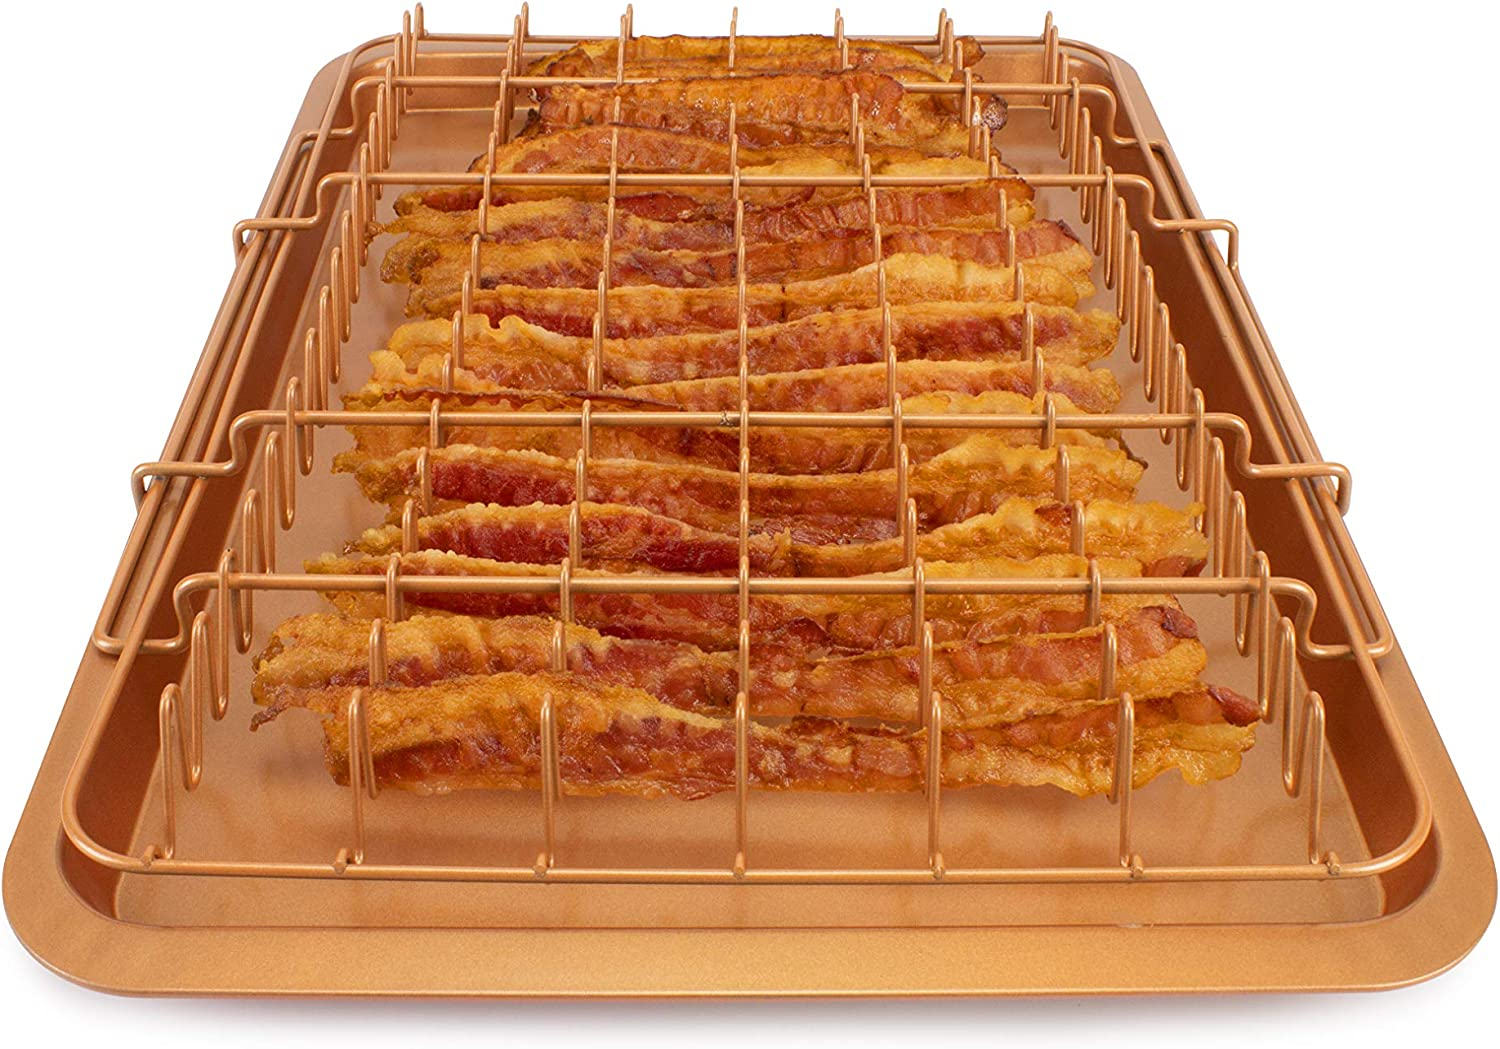 EaZy MealZ Bacon Rack & Tray Set XL Copper, Family Size for 2-5